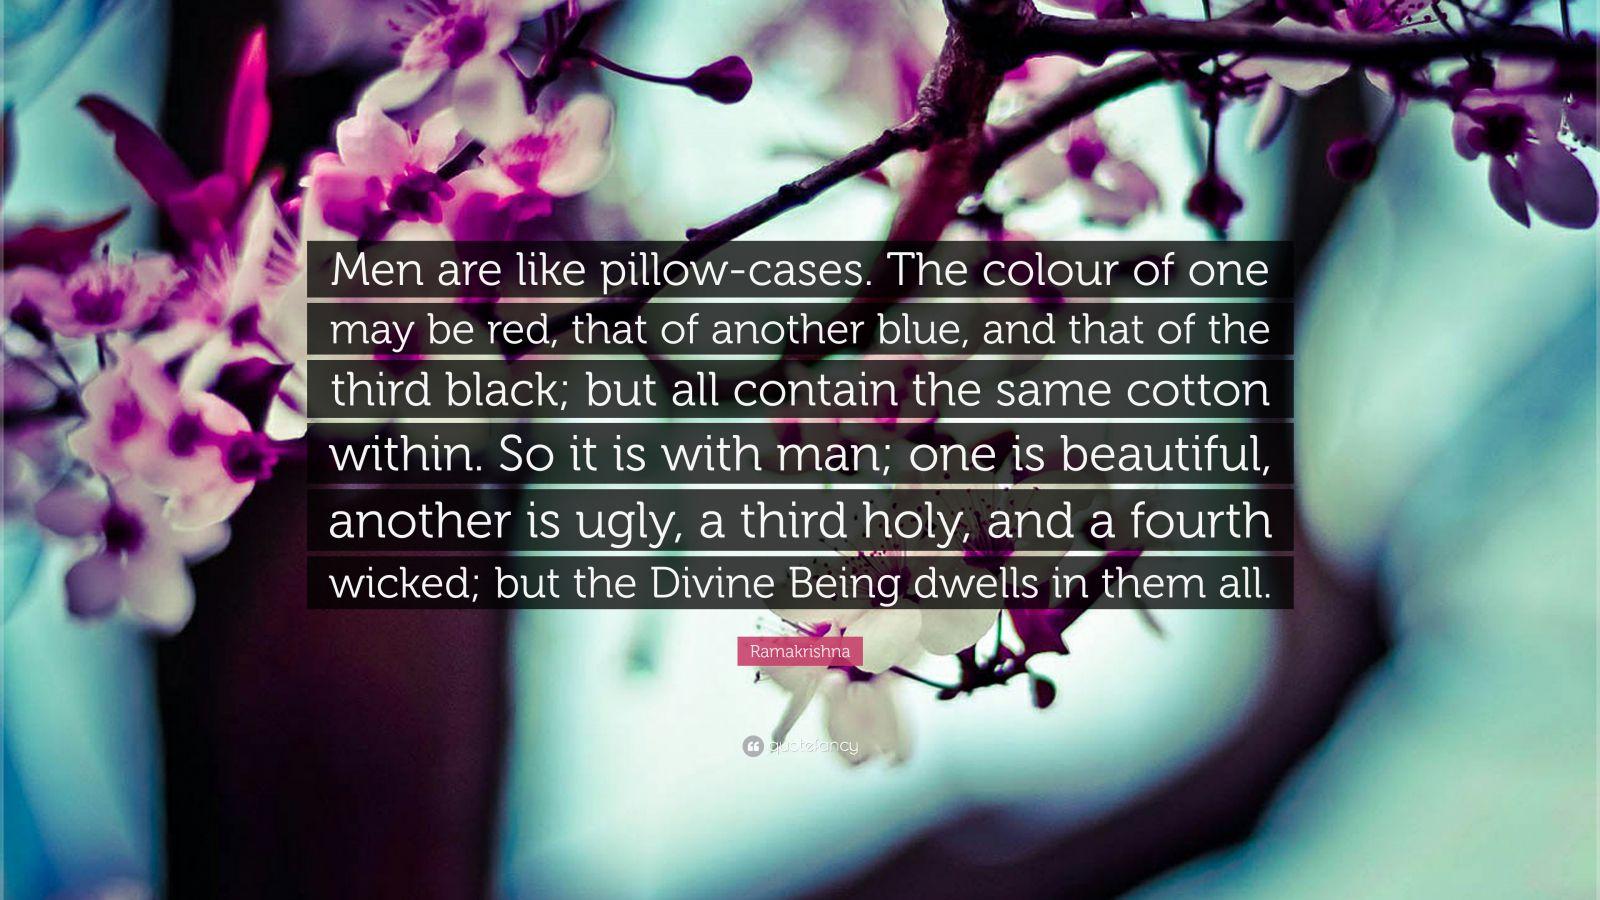 """Ramakrishna Quote: """"Men are like pillow-cases. The colour of one may be red, that of another blue, and that of the third black; but all contain the same cotton within. So it is with man; one is beautiful, another is ugly, a third holy, and a fourth wicked; but the Divine Being dwells in them all."""""""